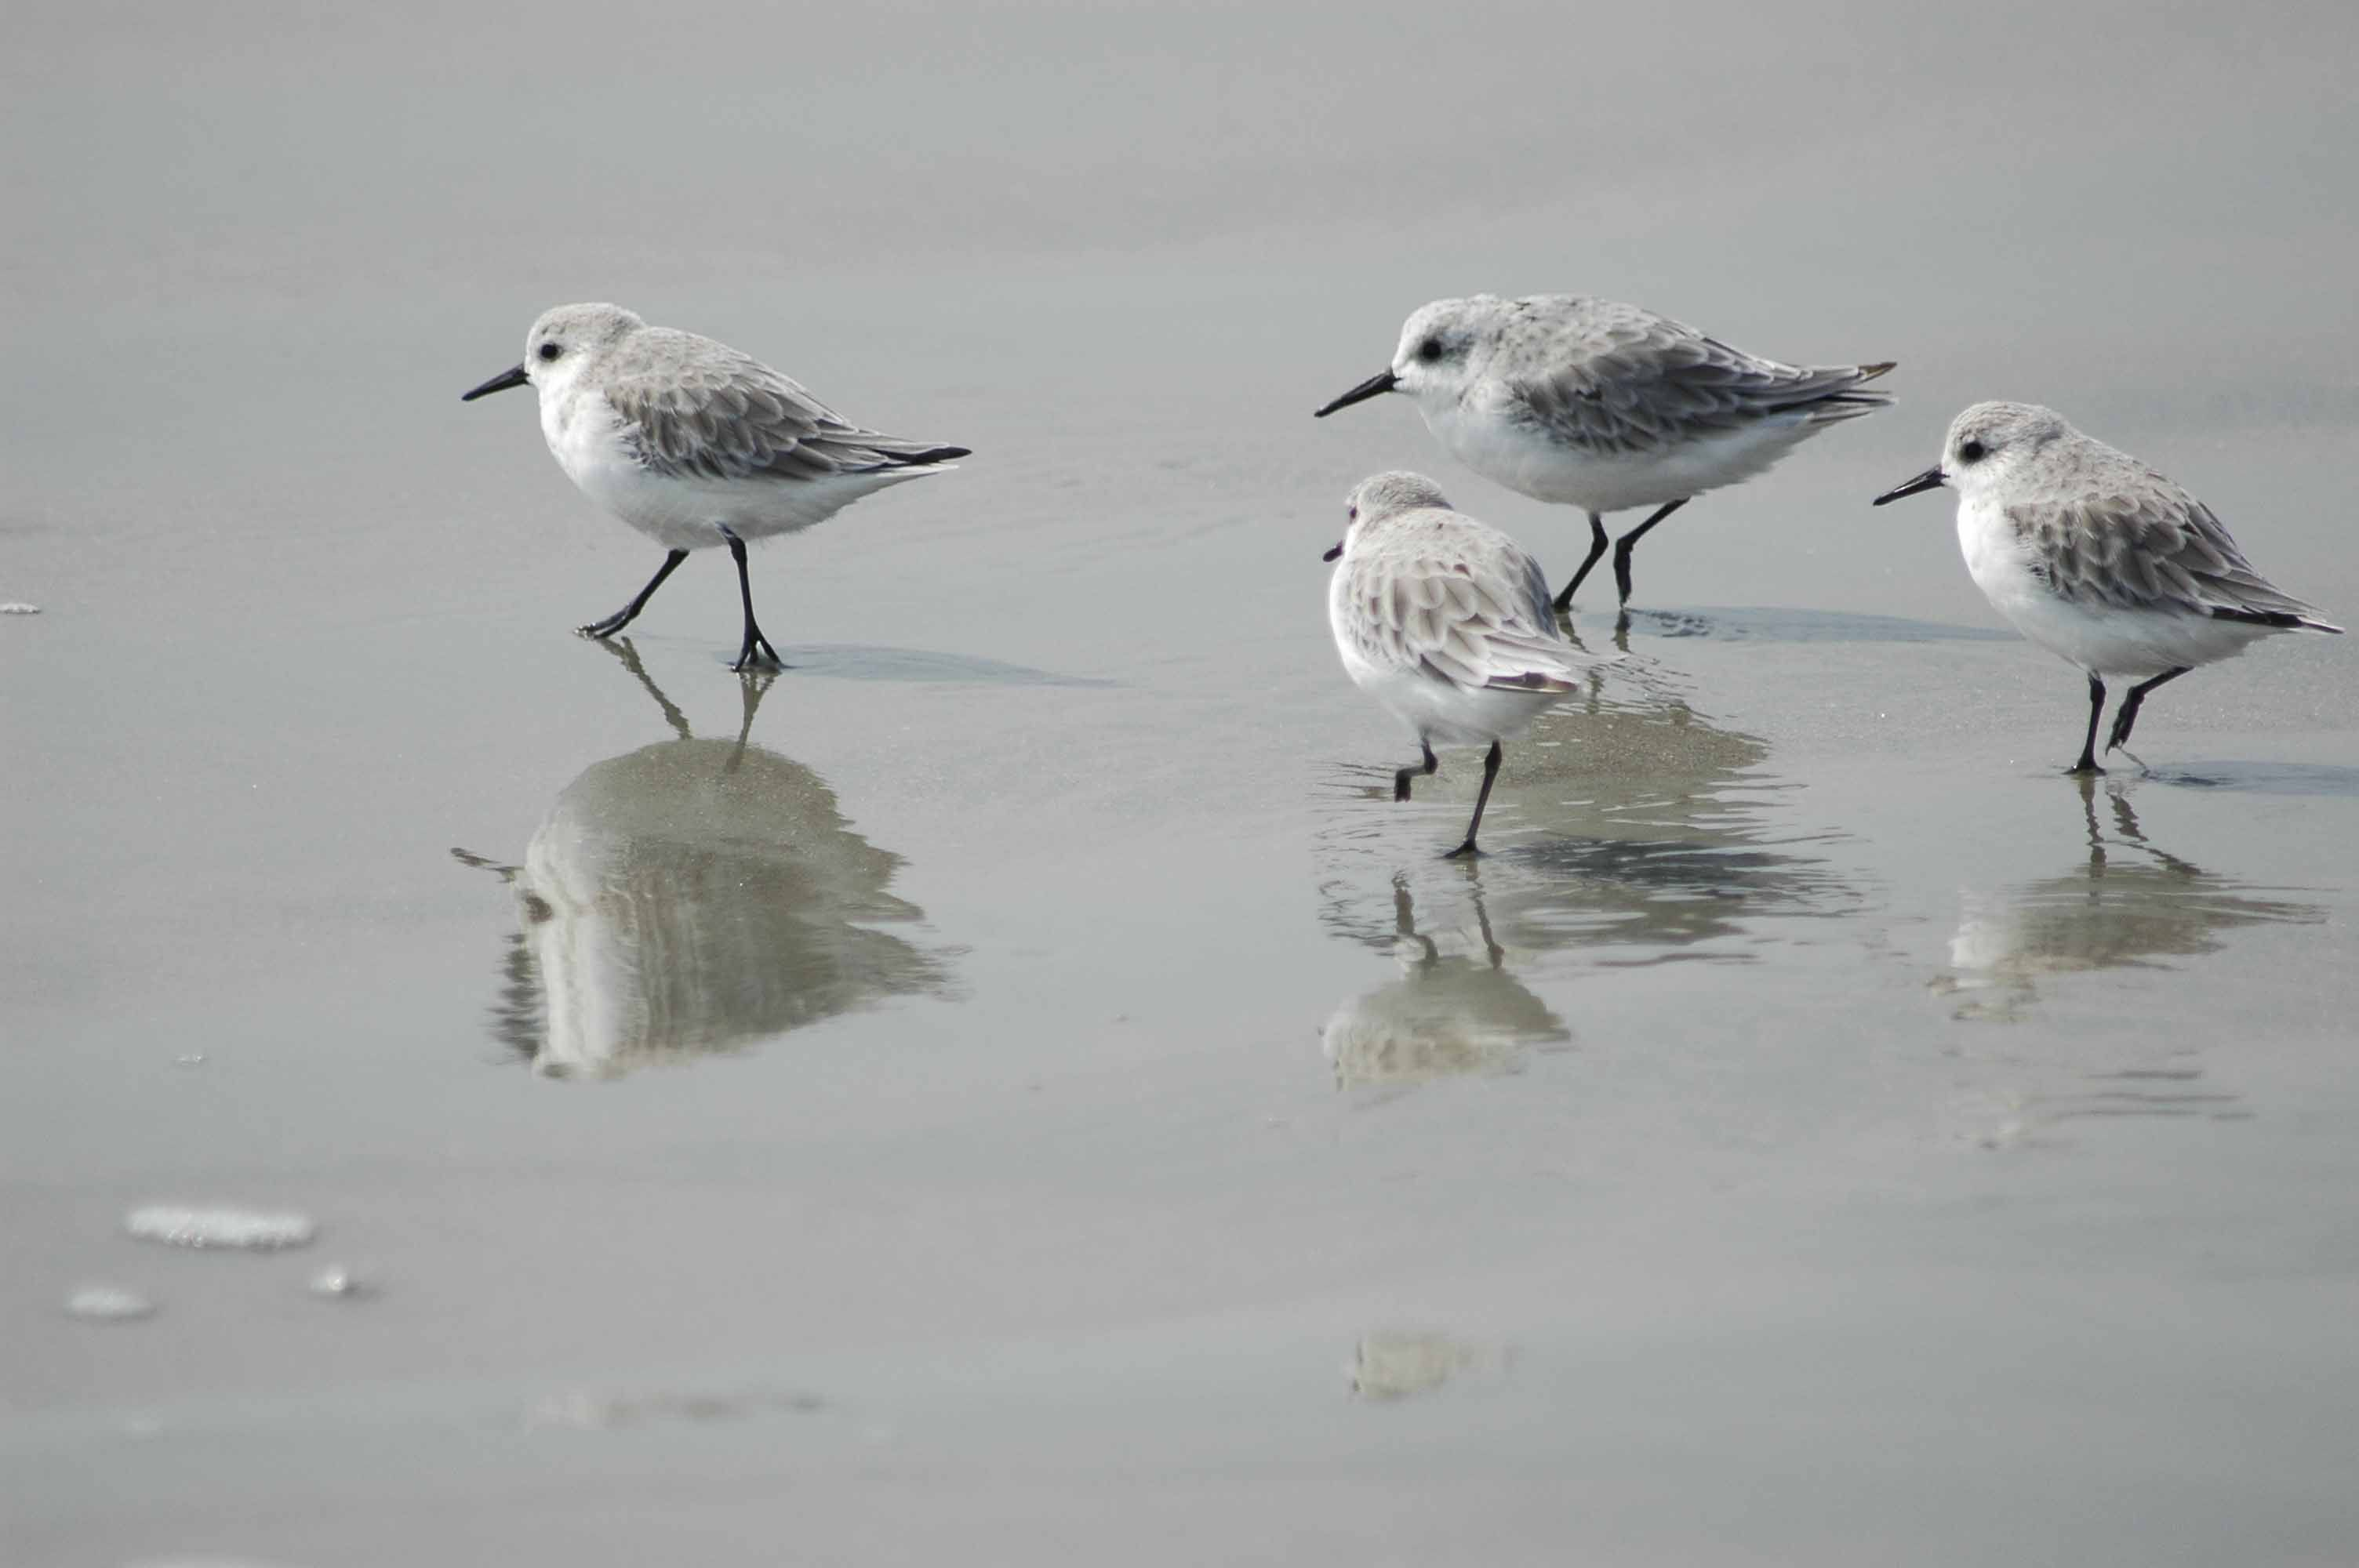 Migratory shorebirds, and the wetland habitats they require to complete their annual journeys, are under threat